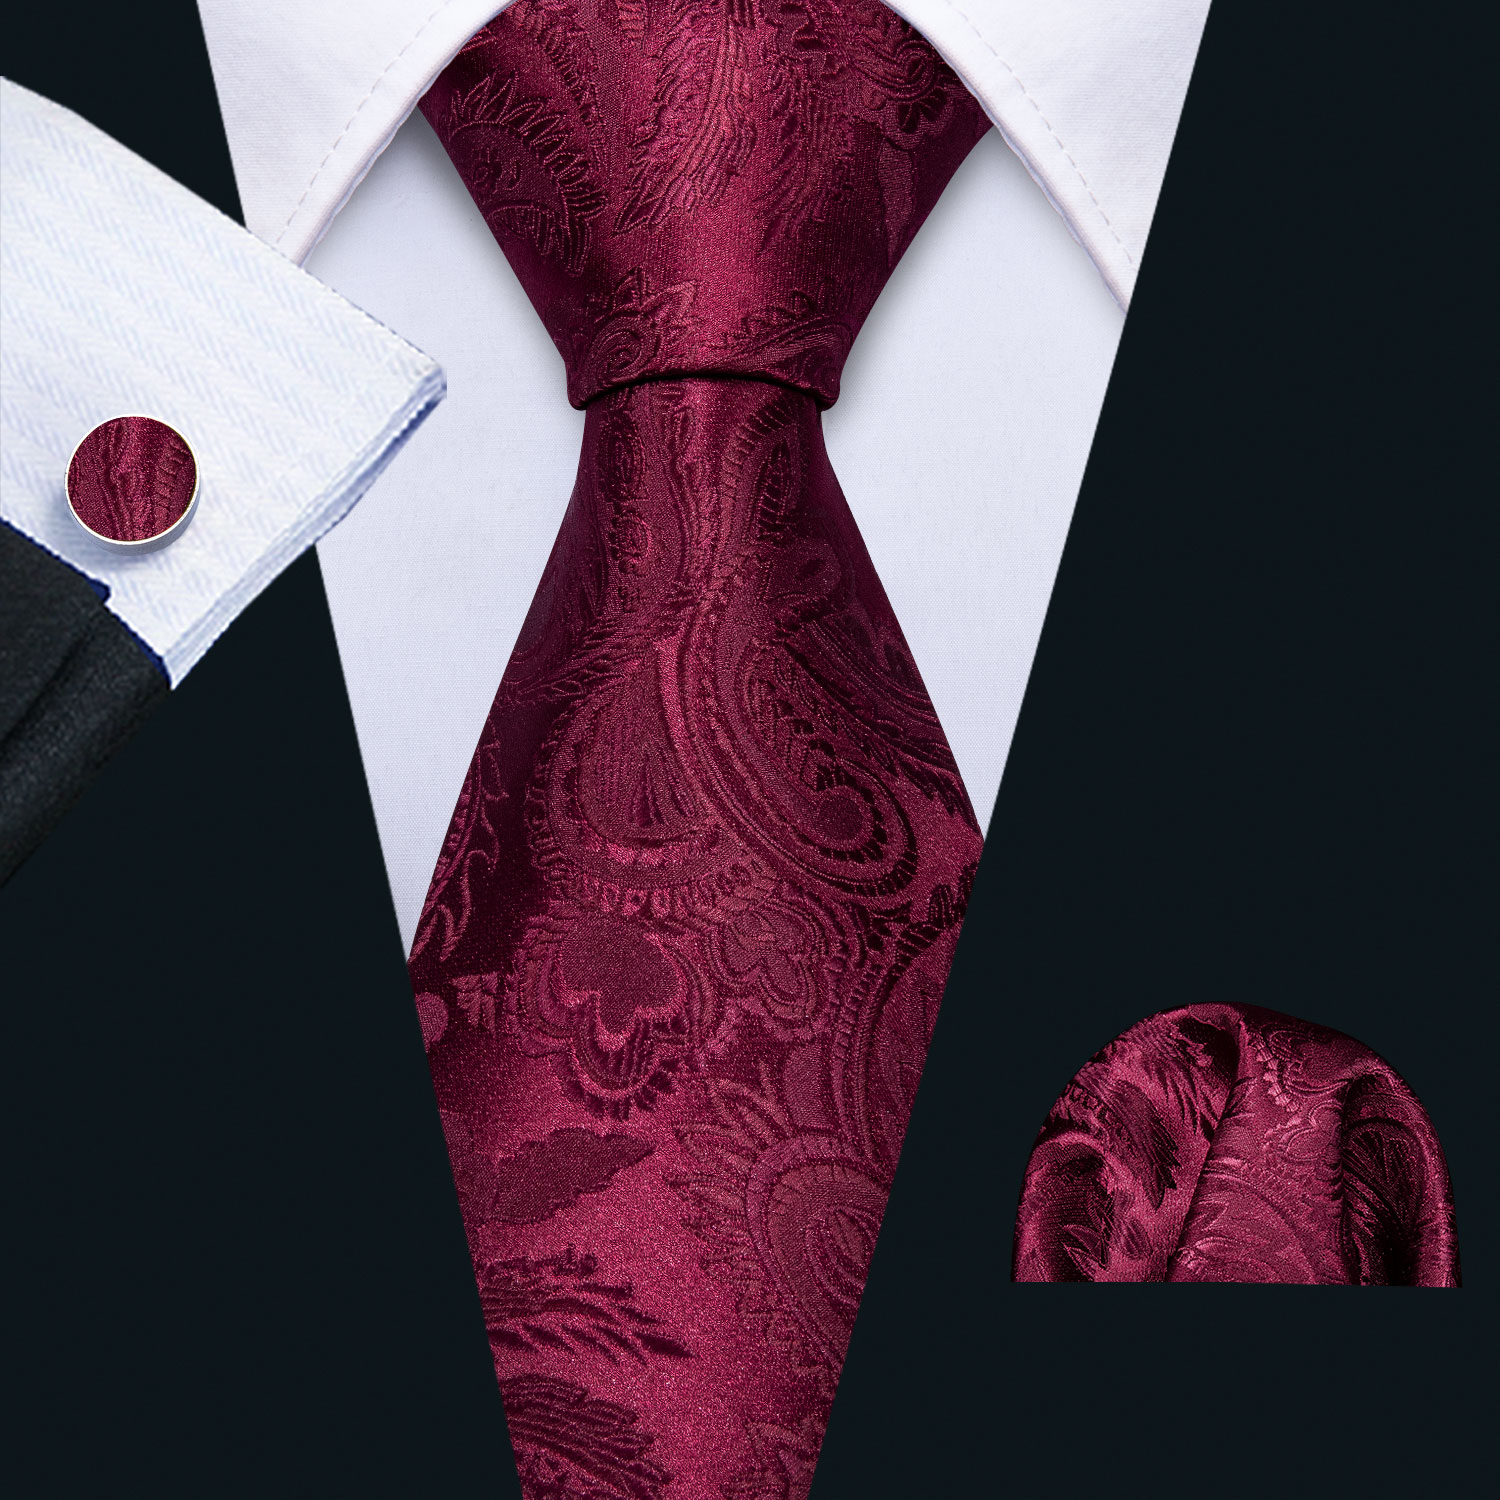 2019 Men Wedding Tie Red Foral Silk Tie Hanky Set Barry.Wang 8.5cm Fashion Designer NeckTies For Men Party Dropshipping FA-5144